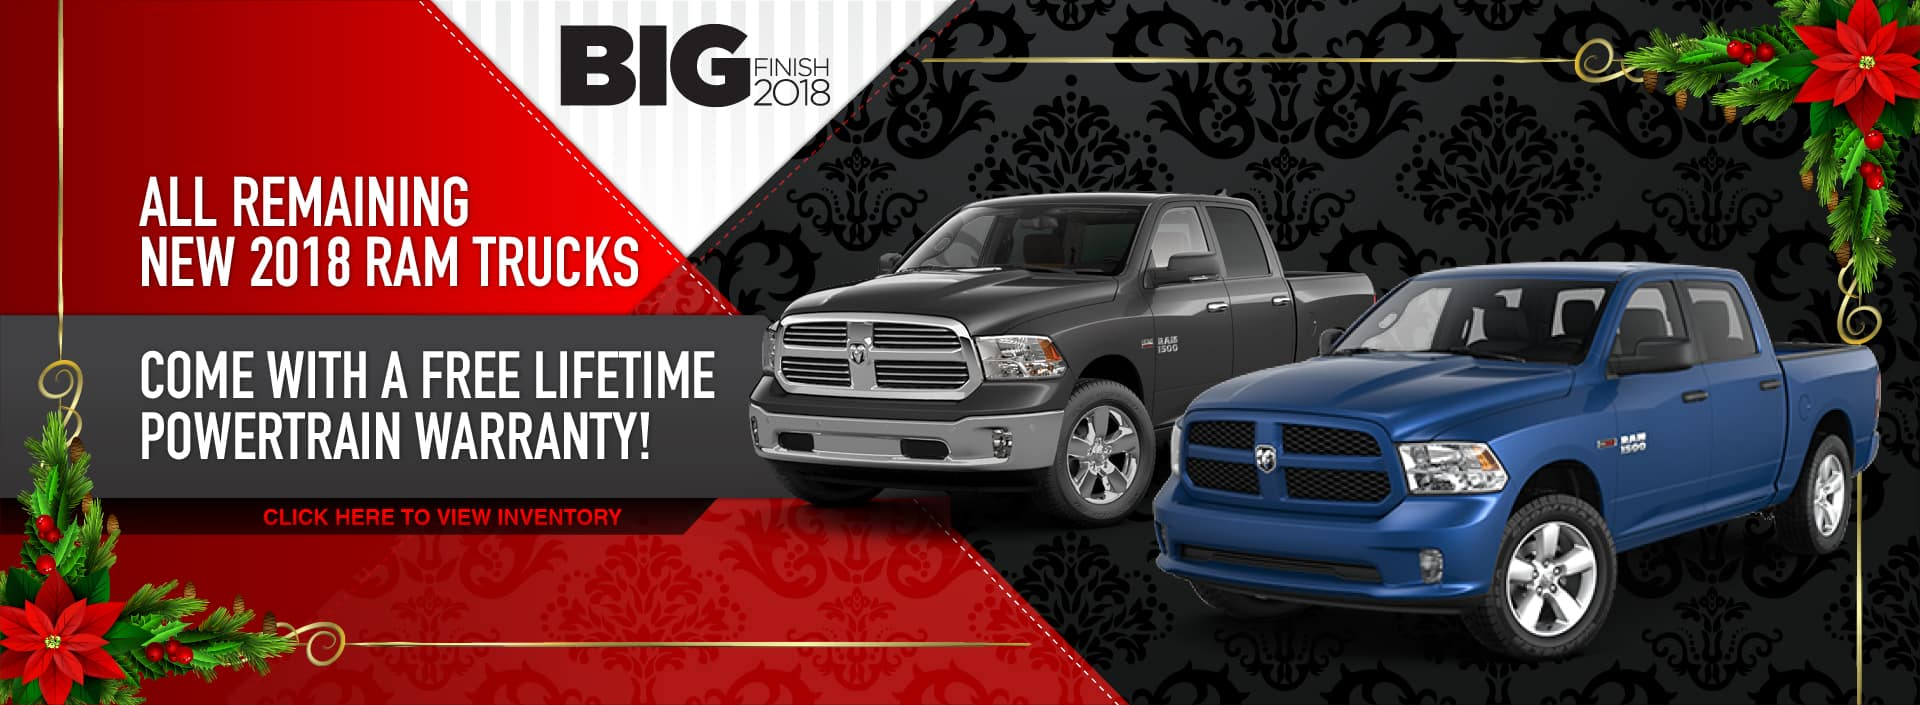 Free Lifetime Powertrain Warranty with the purchase of a new 2018 RAM truck in Waseca, MN